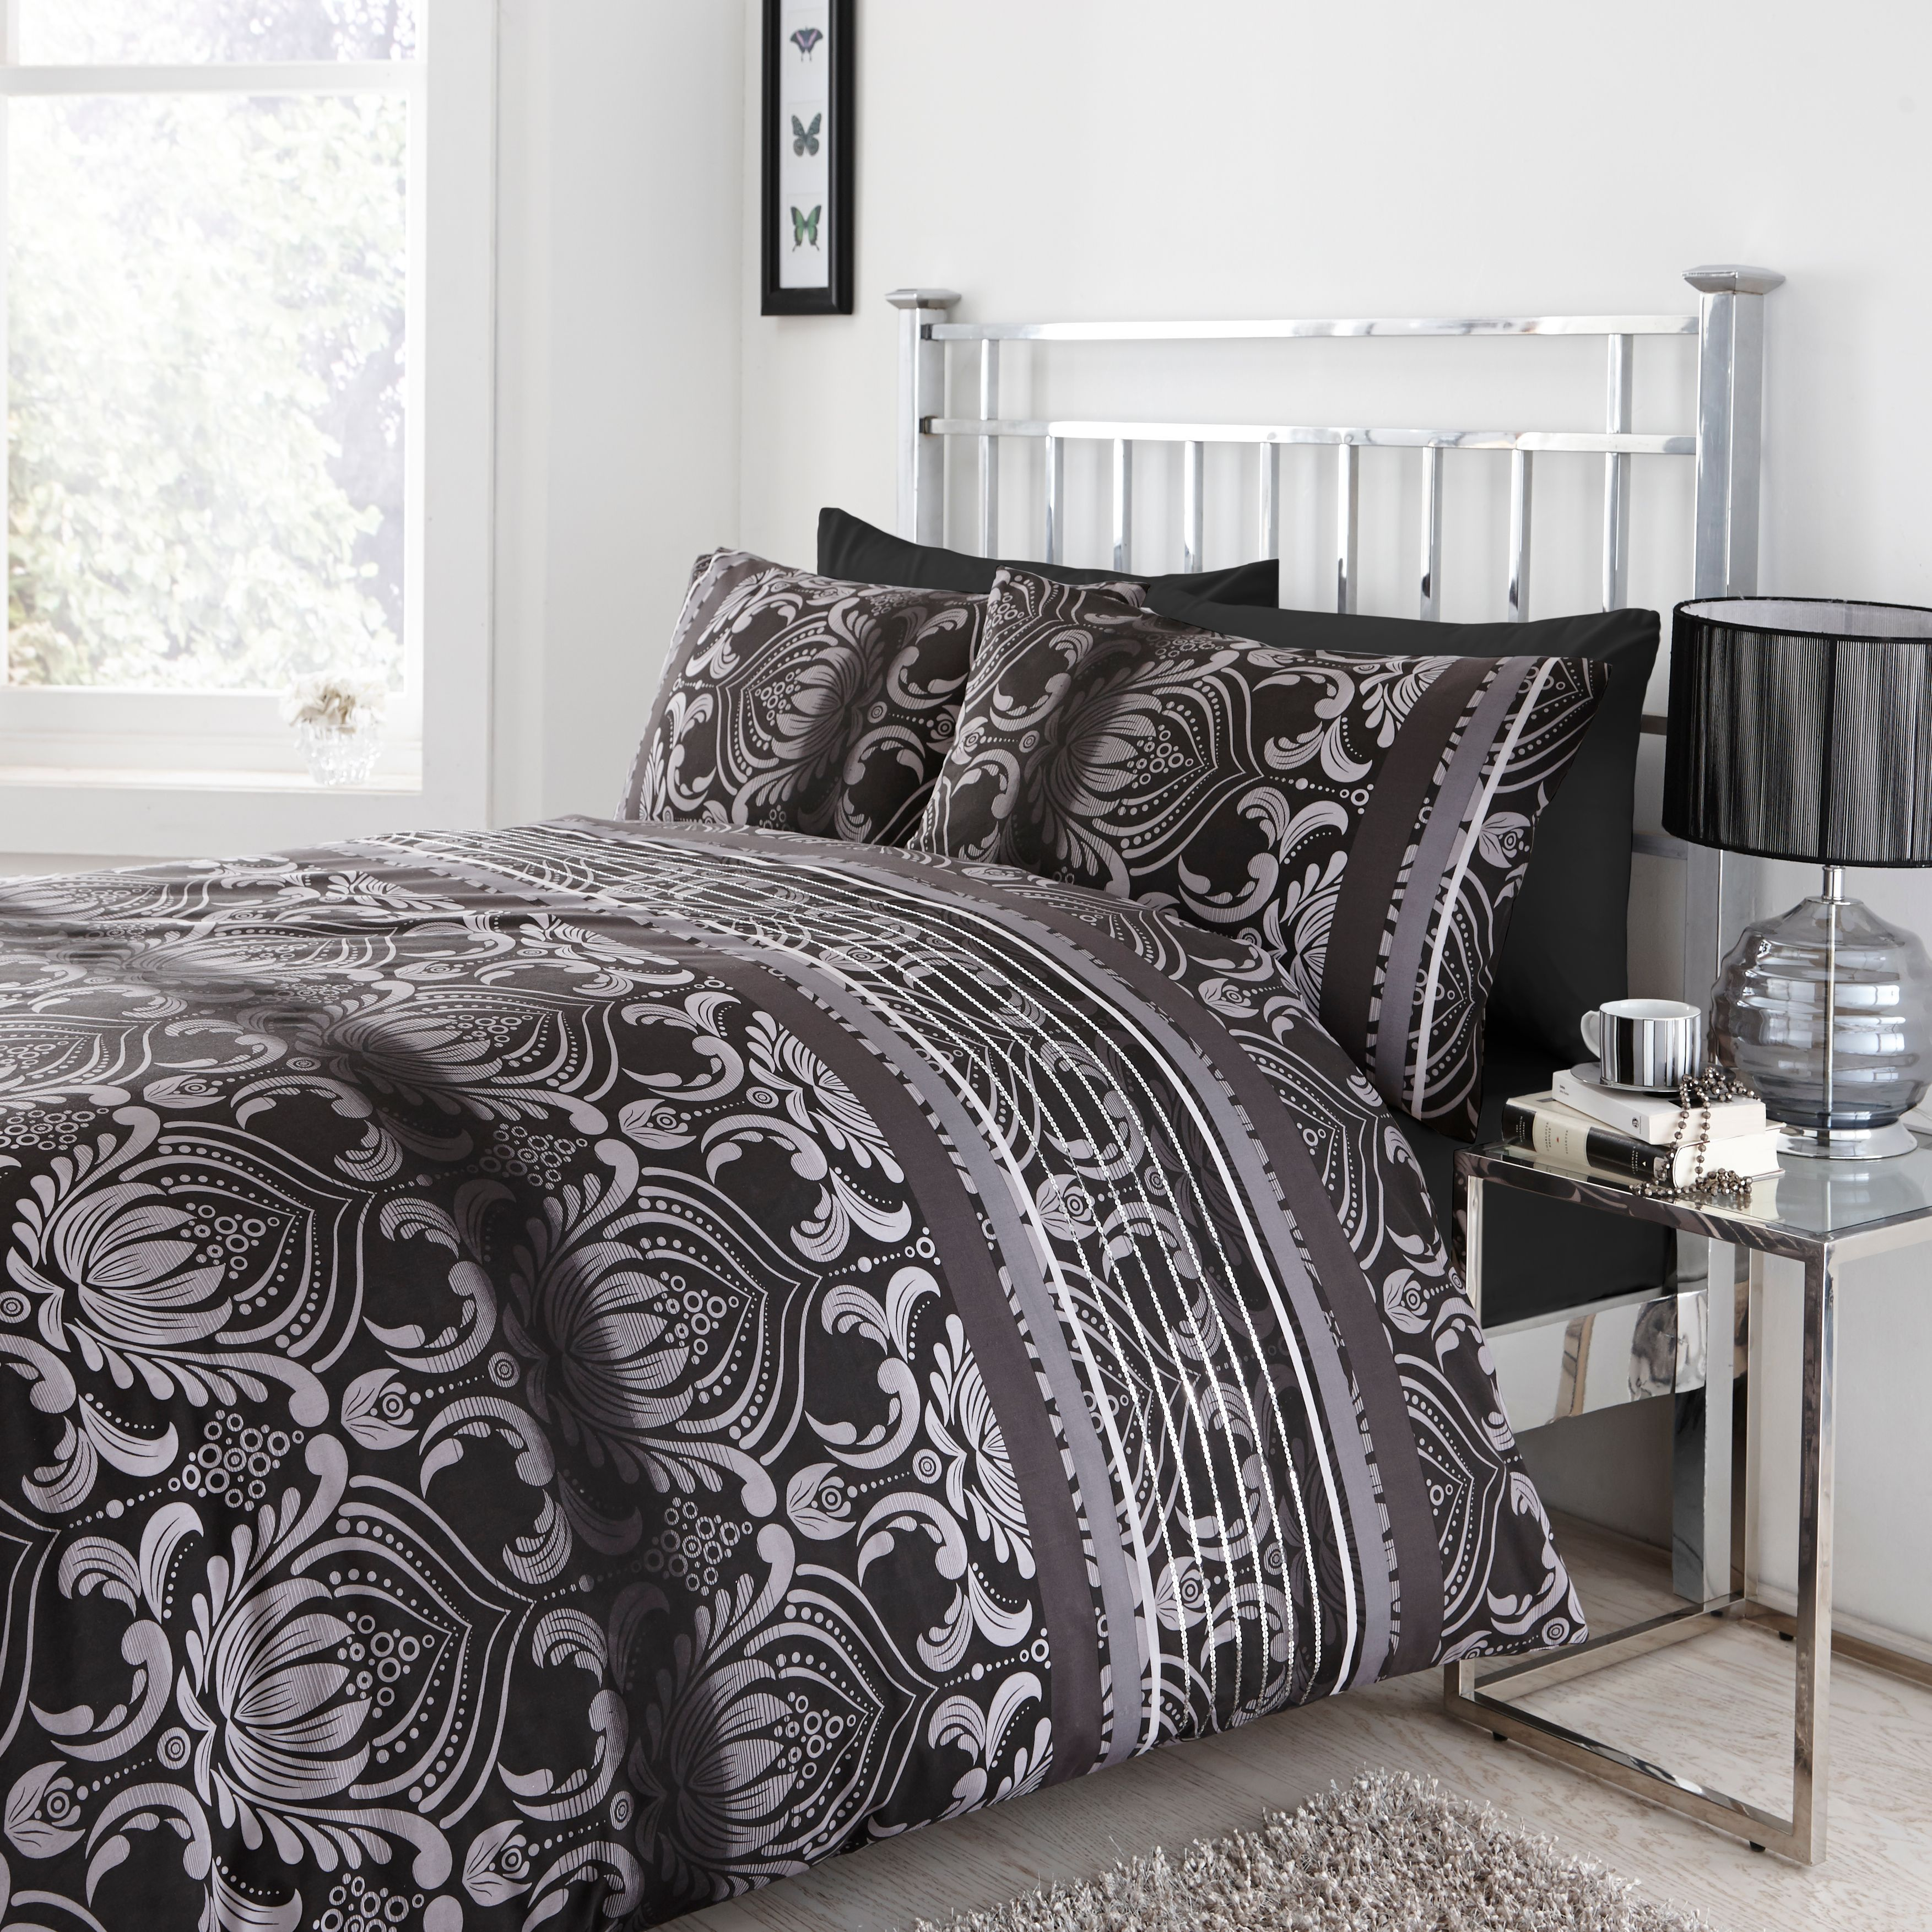 Chartwell Dramatic Damask Black Kingsize Bed Cover Set